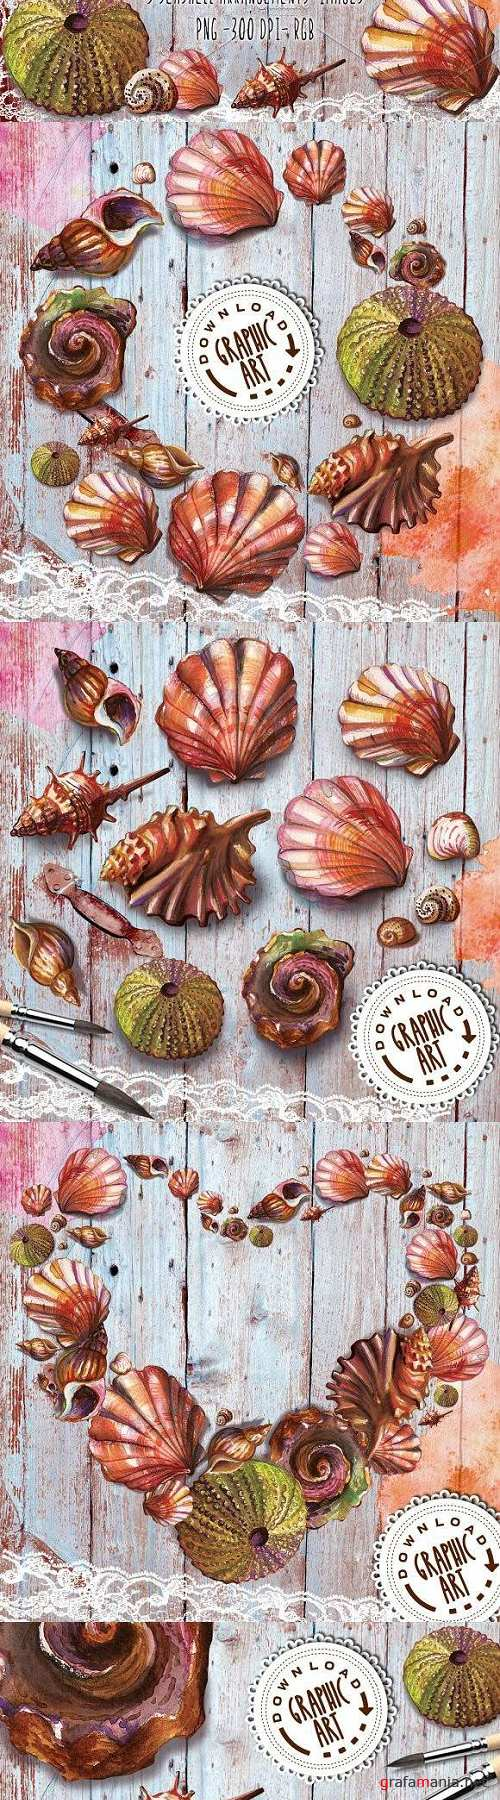 Watercolor clipart Seashell wreath 2390611